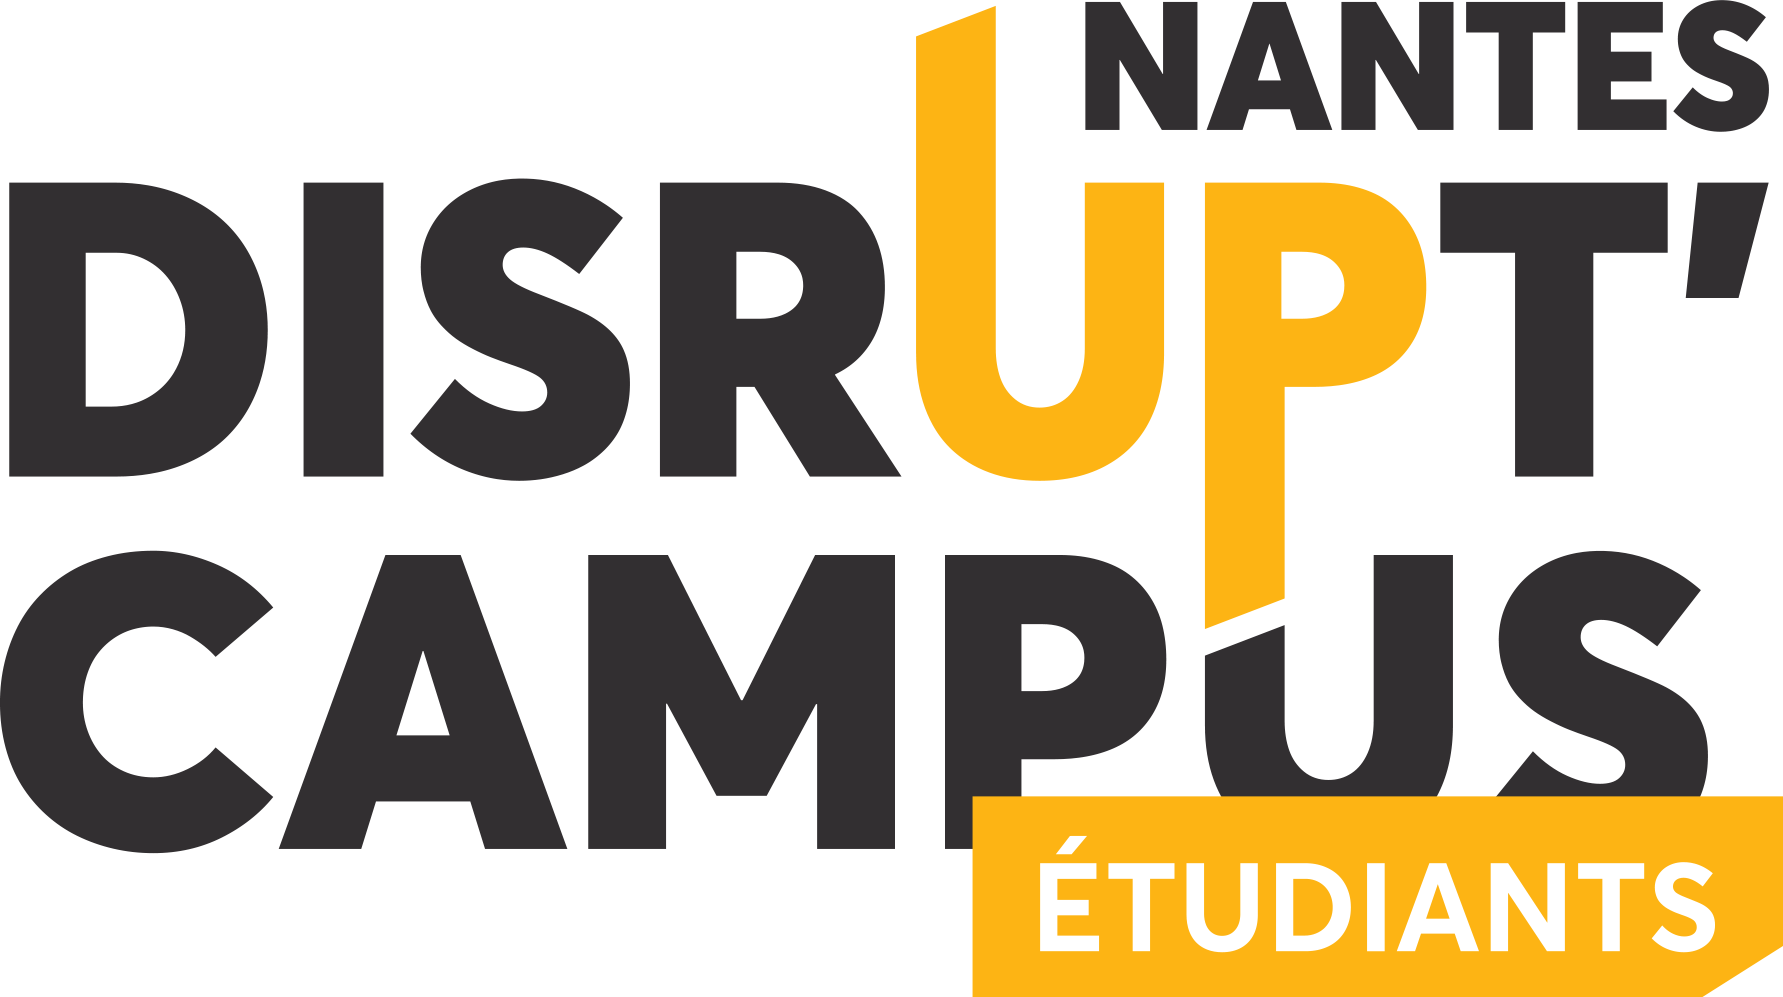 etudiants-disrupt-campus-nantes